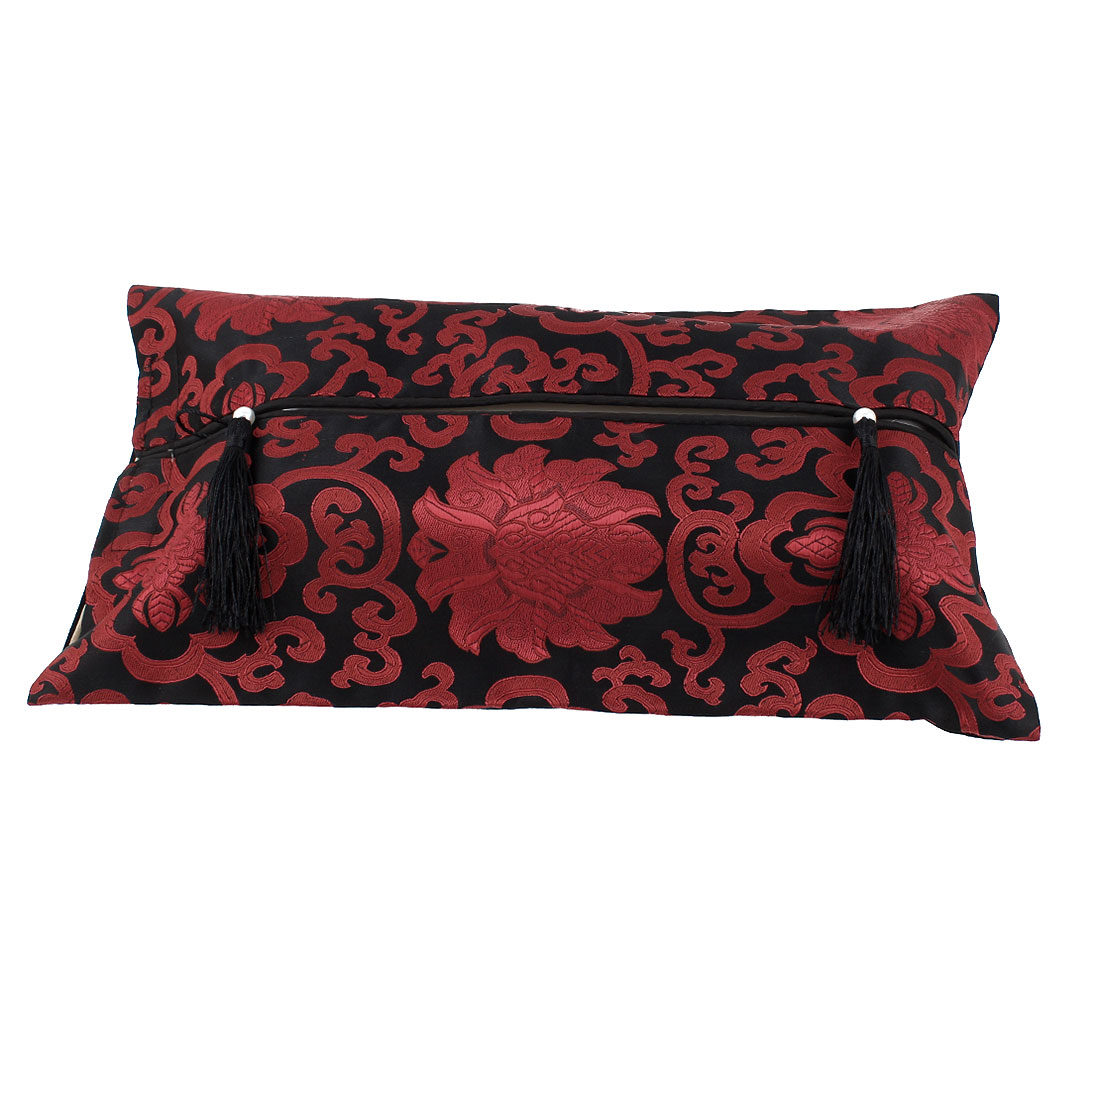 Rectangle Shape Embroidery Floral Pattern Tassel Decor Tissue Box Cover Red Black